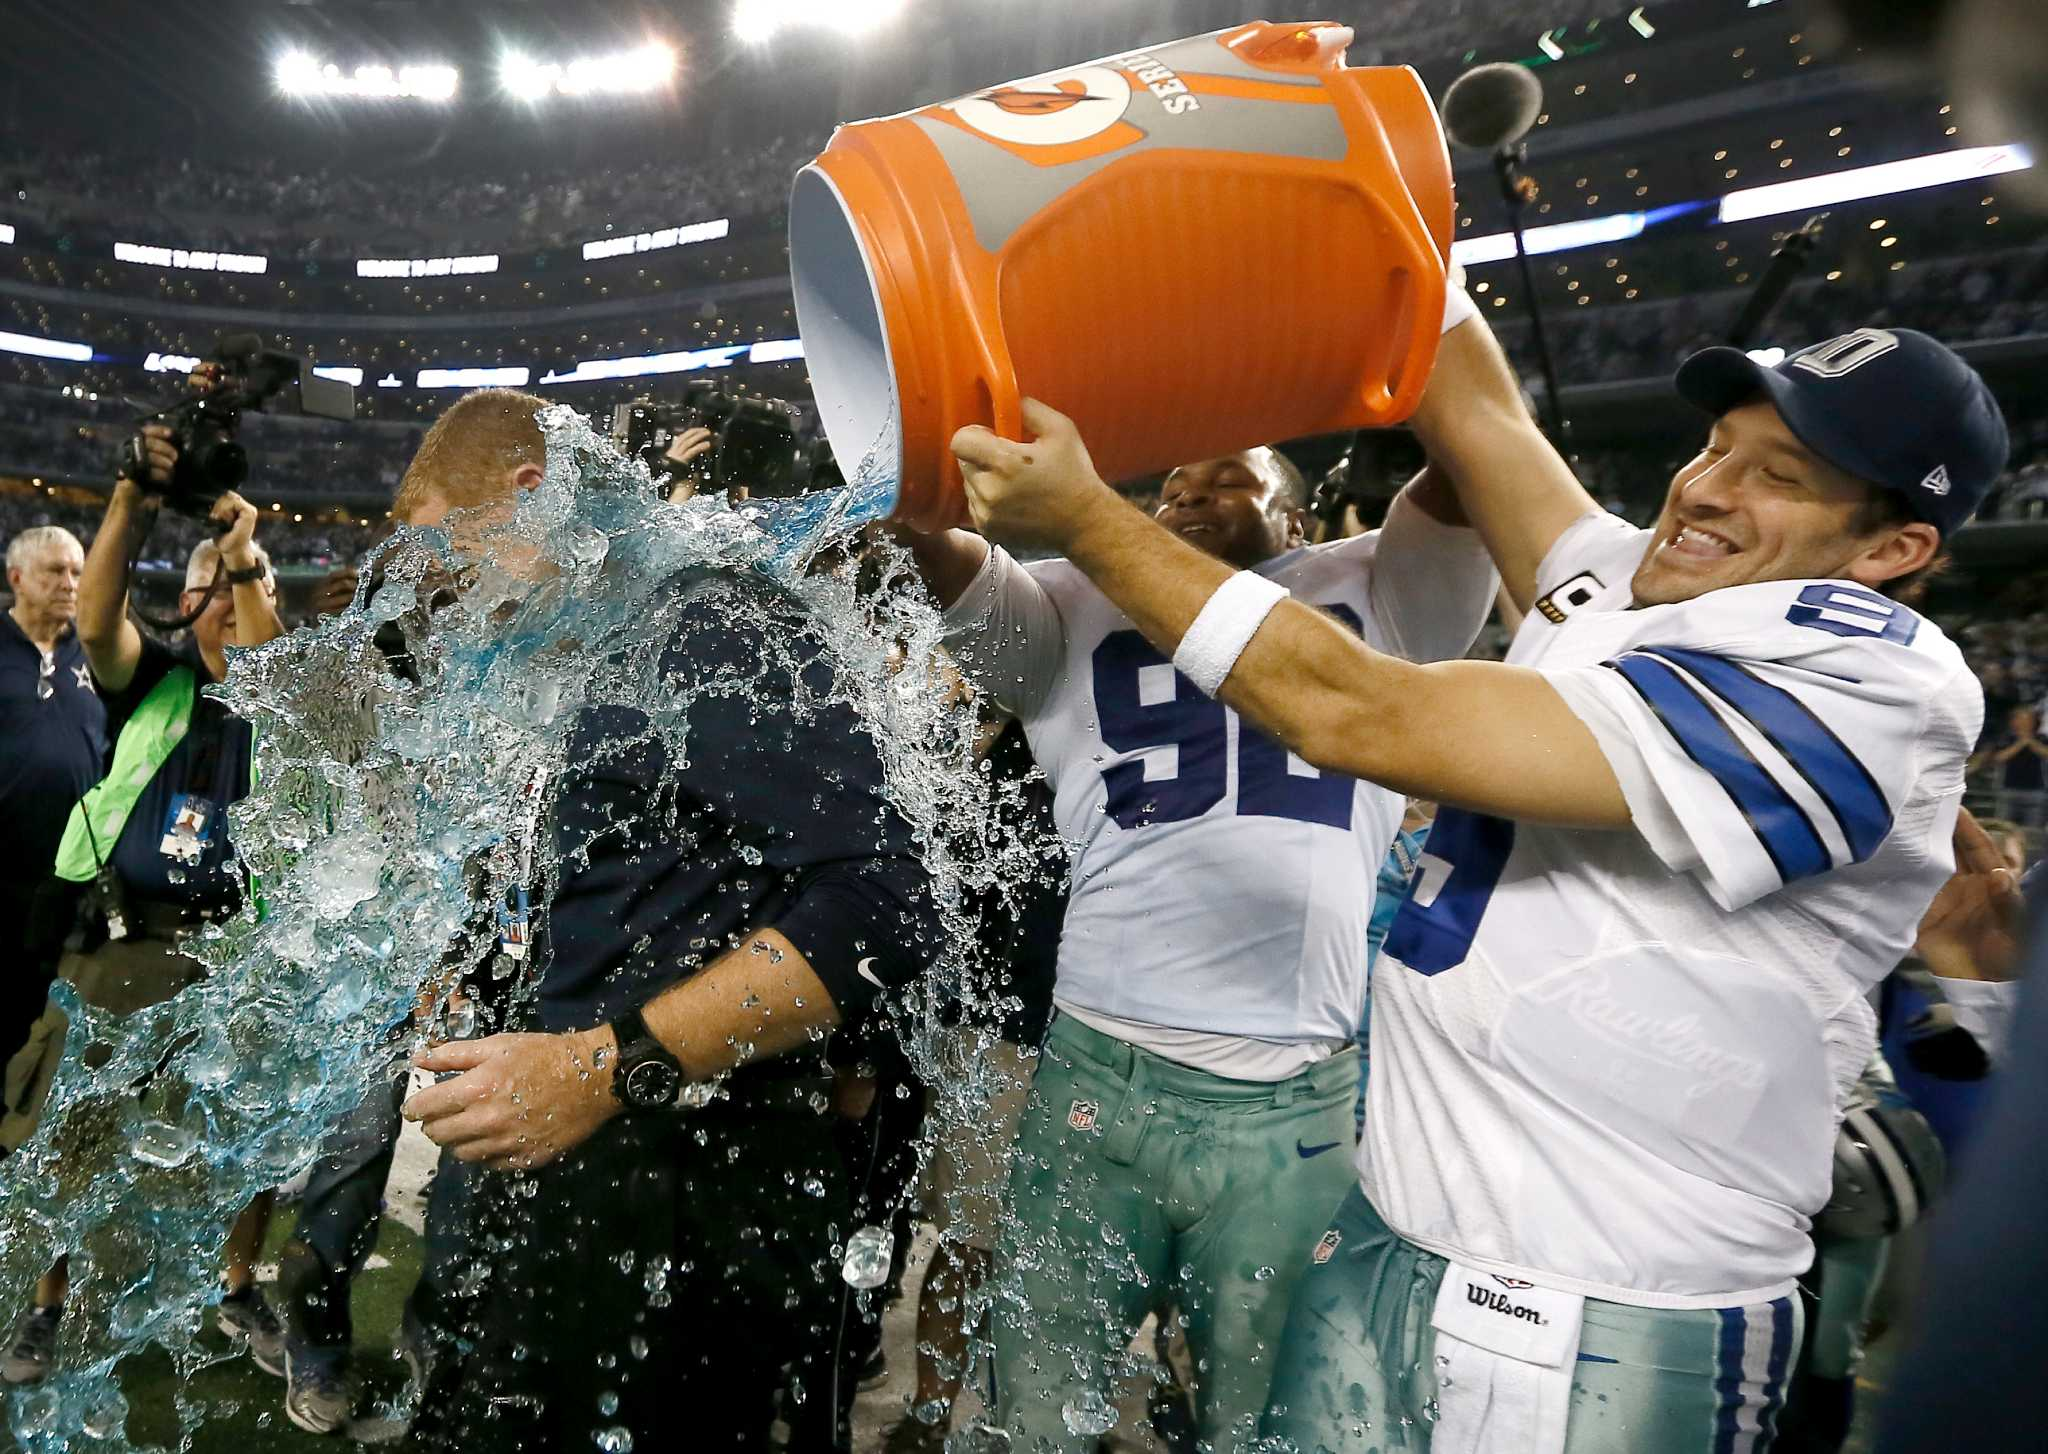 Cowboys Blog - What Have These Playoffs Taught Us About the Cowboys? 2